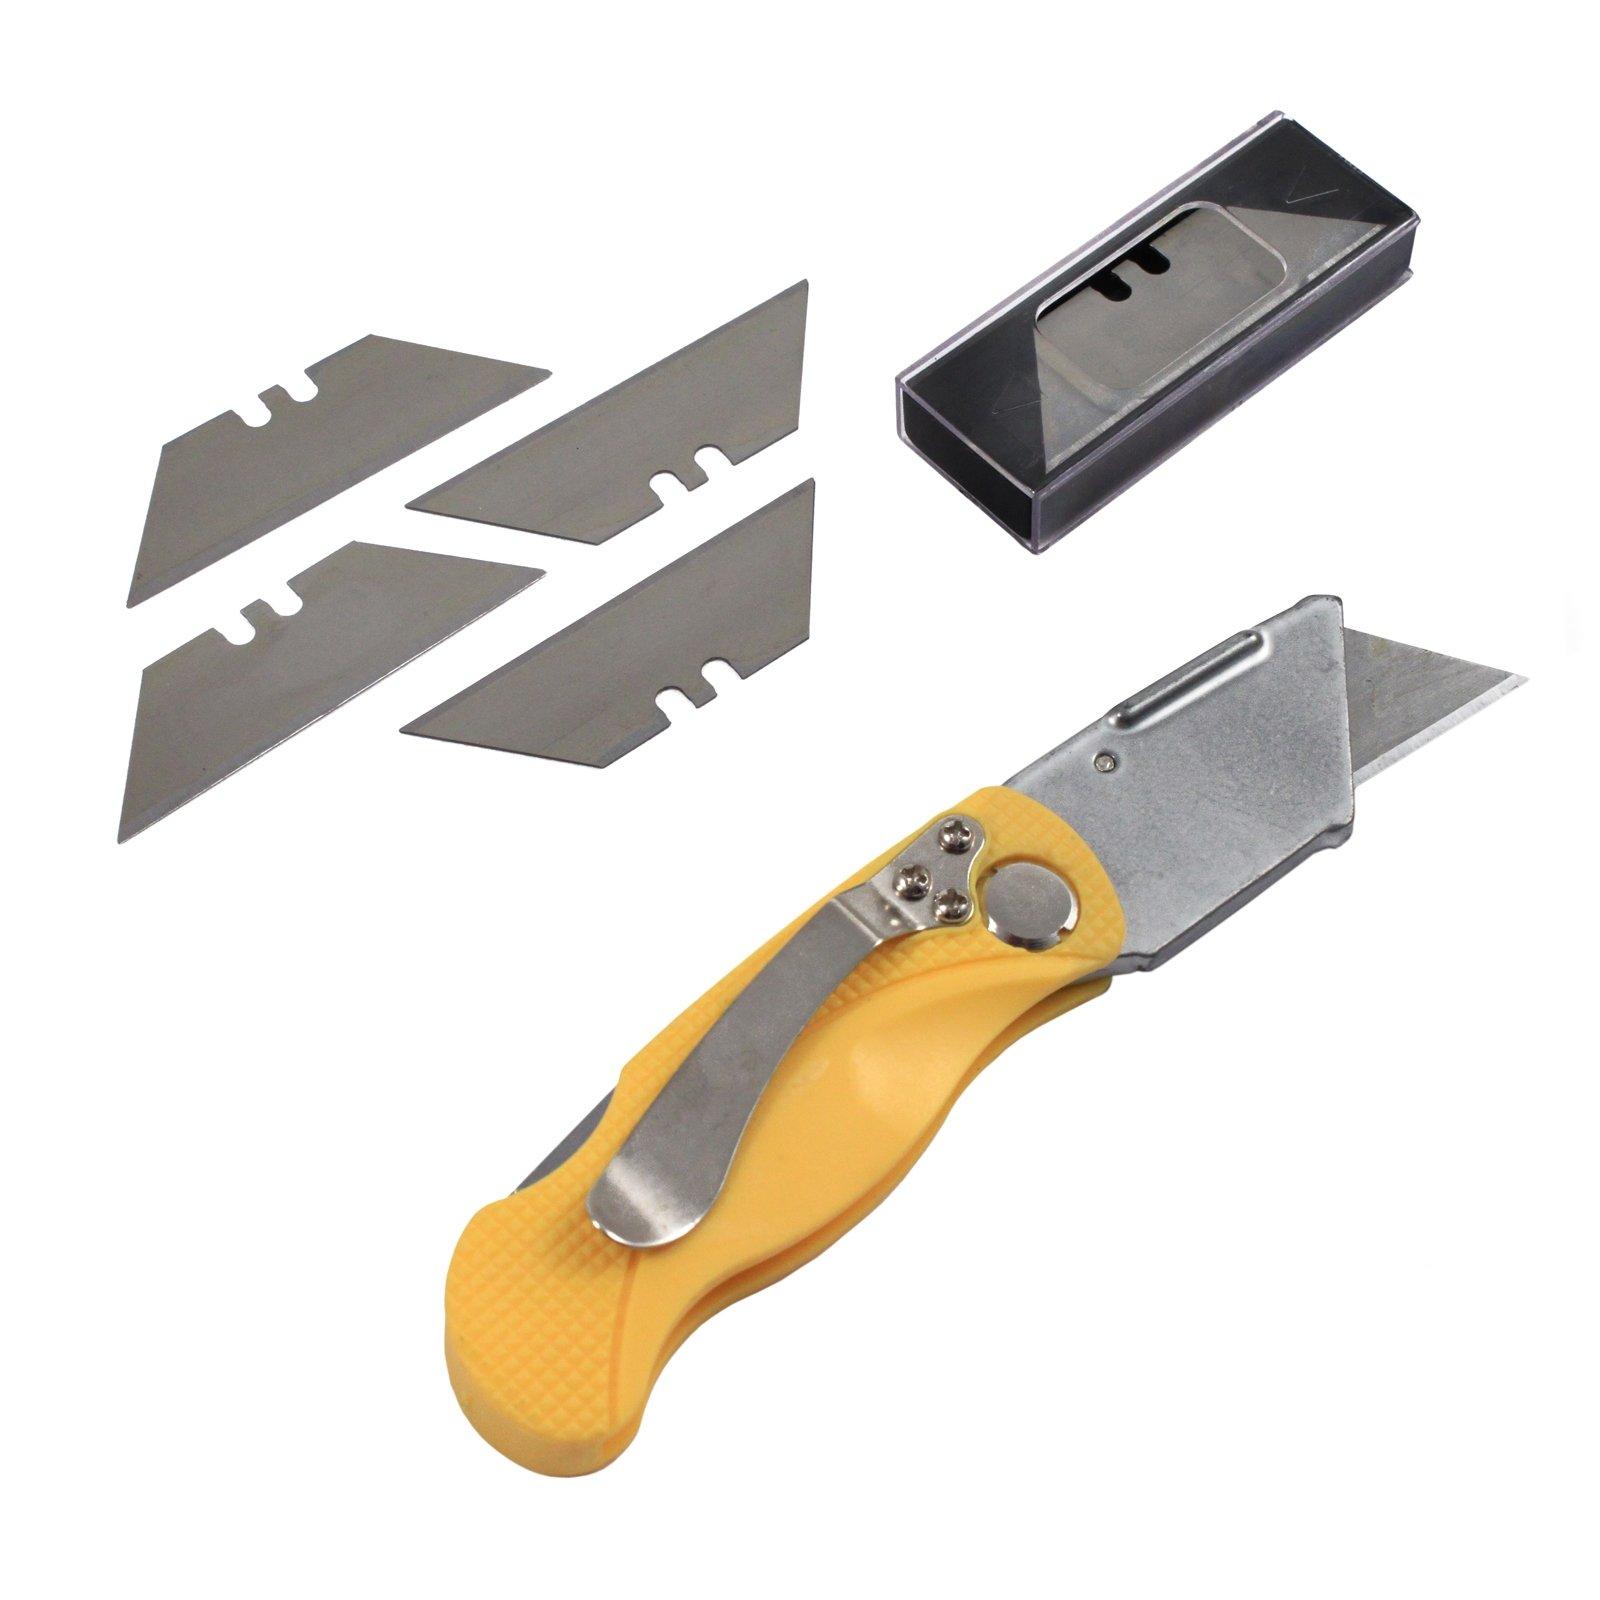 Folding Box Cutter Multi Blade Set Utility Pocket Knife Retractable Heavy Duty Tool